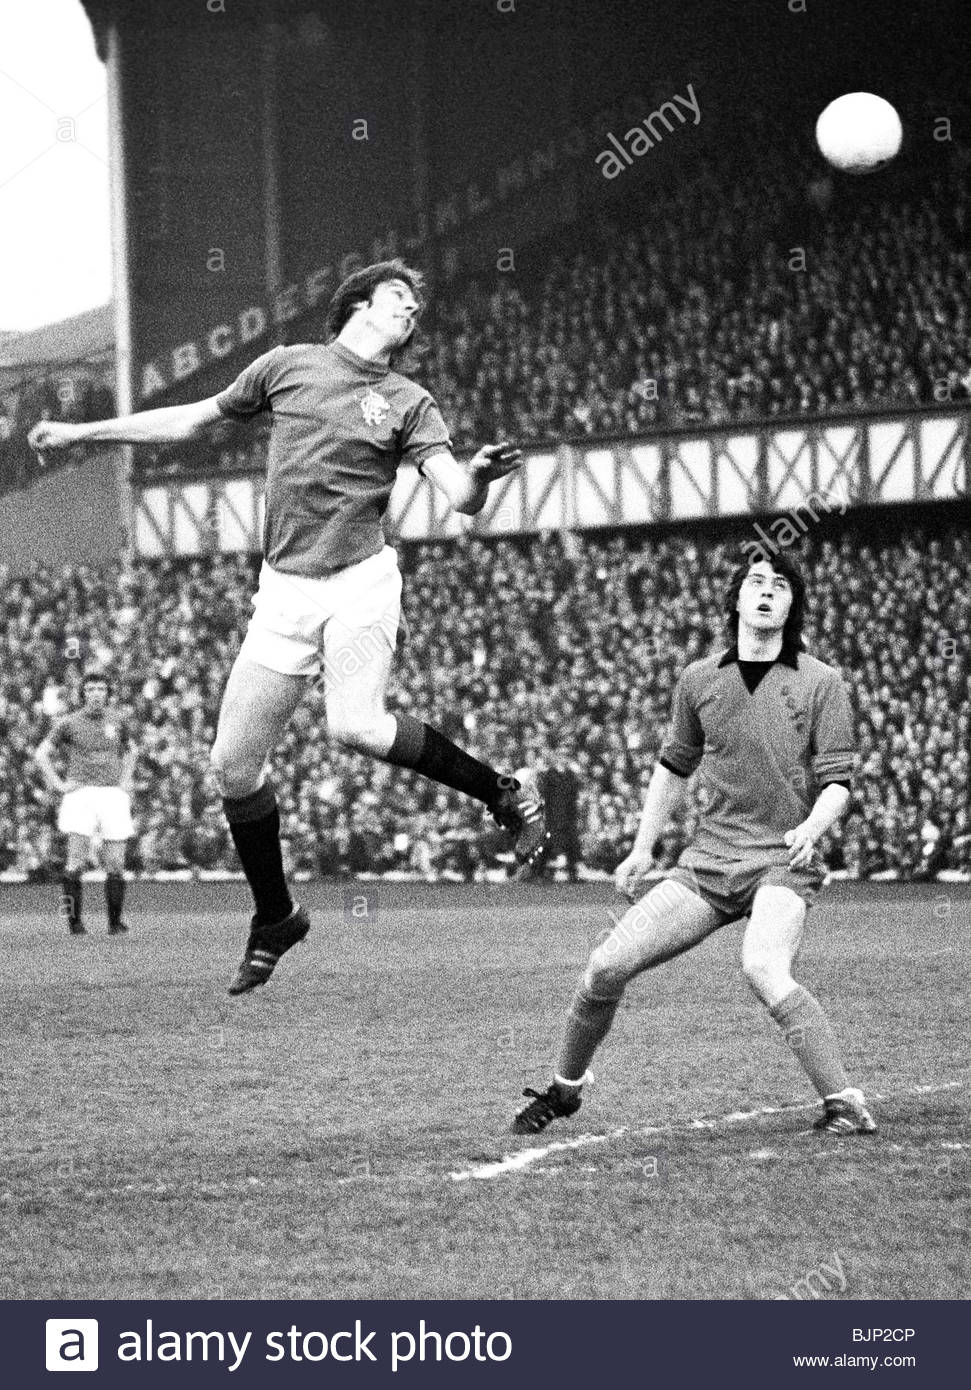 04/05/76 SPL RANGERS V DUNDEE UTD (0-0) IBROX - GLASGOW Rangers' Willie Henderson (left) jump to meet a high - Stock Image